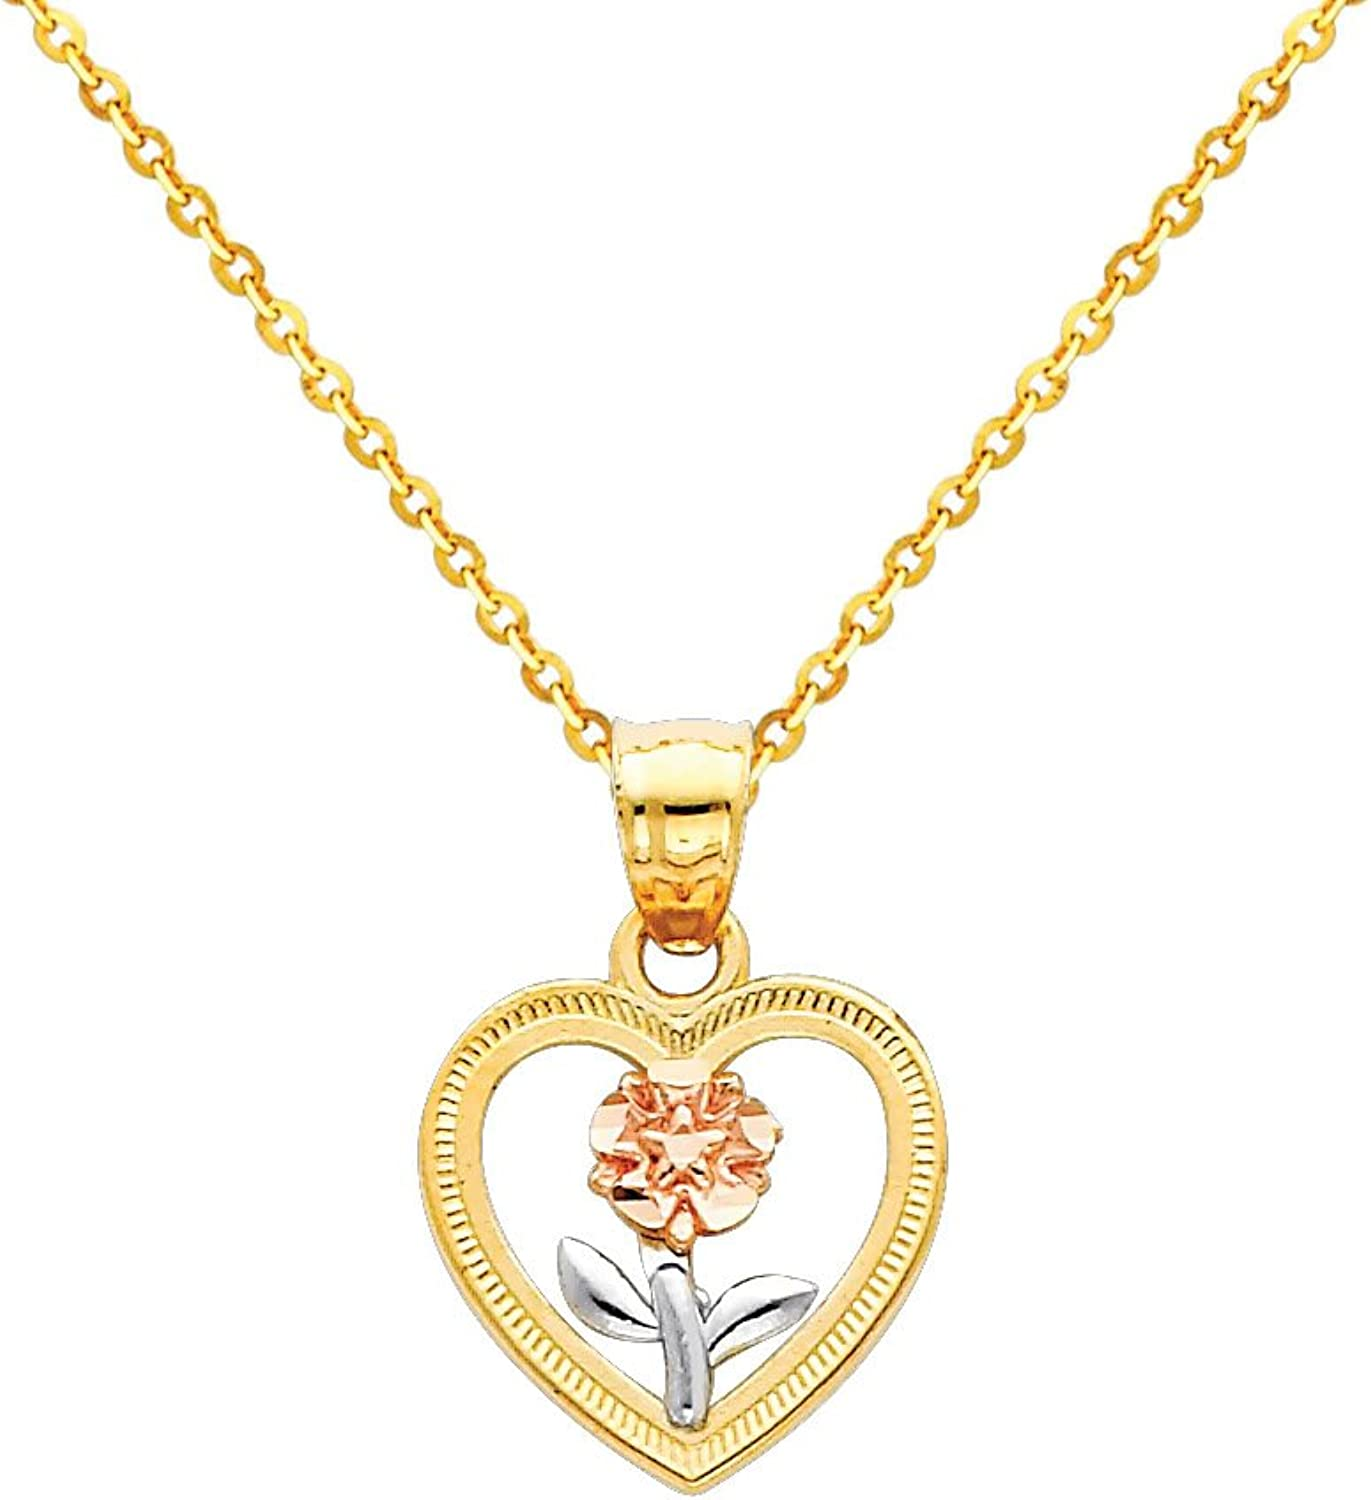 14k Tri color gold Flower in Heart Charm Pendant with 1.2mm Side Diamondcut Rolo Cable Chain Necklace